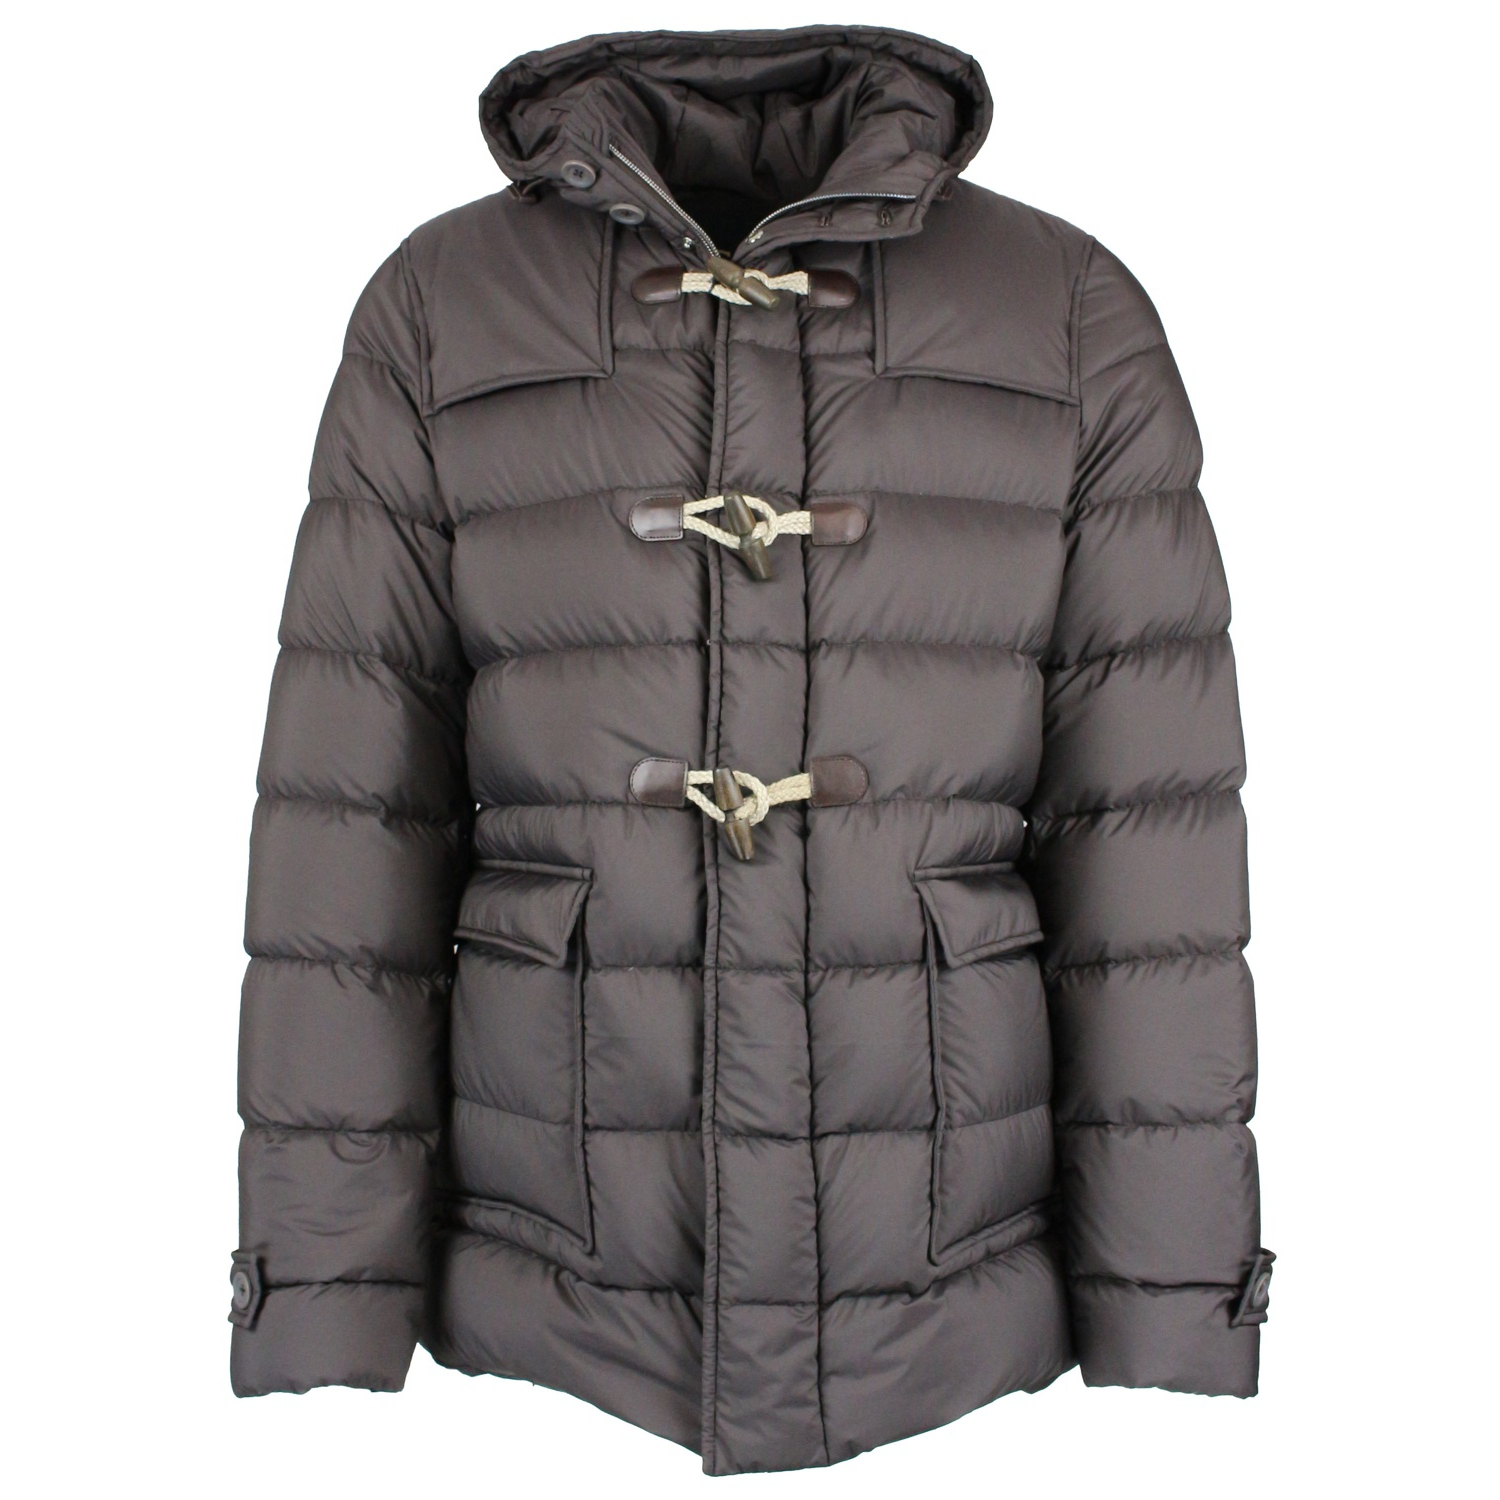 newest dfc3a ef2ce MONTGOMERY DOWN JACKET WITH ALAMARI